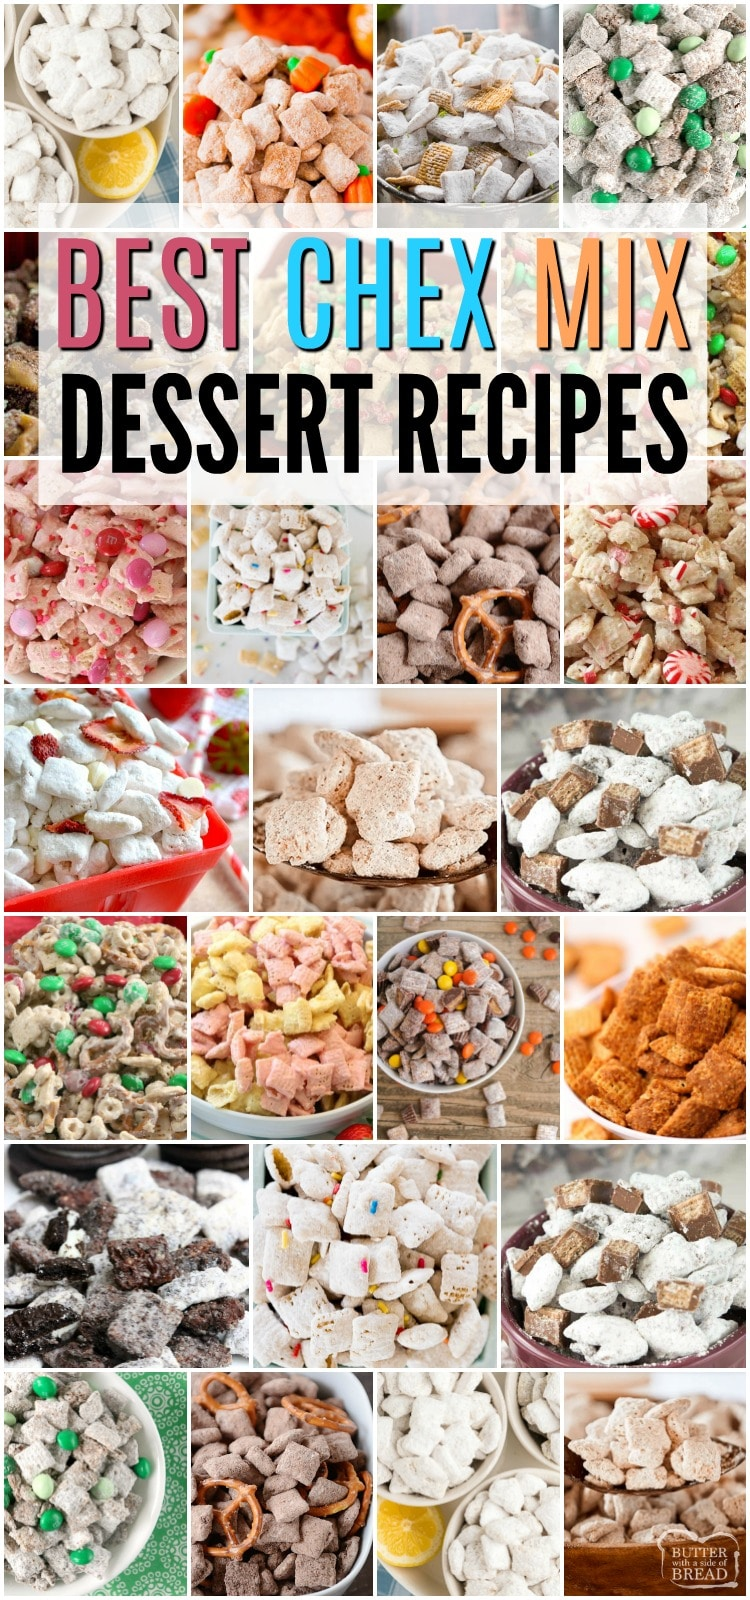 Chex Mix Dessert Recipes for everyone to enjoy! This compilation of our favorite Chex Mix Dessert Recipes from Lemon Muddy Buddies to Easy Peppermint Chex Mix is sure to be just what you're wanting for summer fun or holiday parties! #chexmix #dessertrecipes #yummysnacks #recipe from BUTTER WITH A SIDE OF BREAD